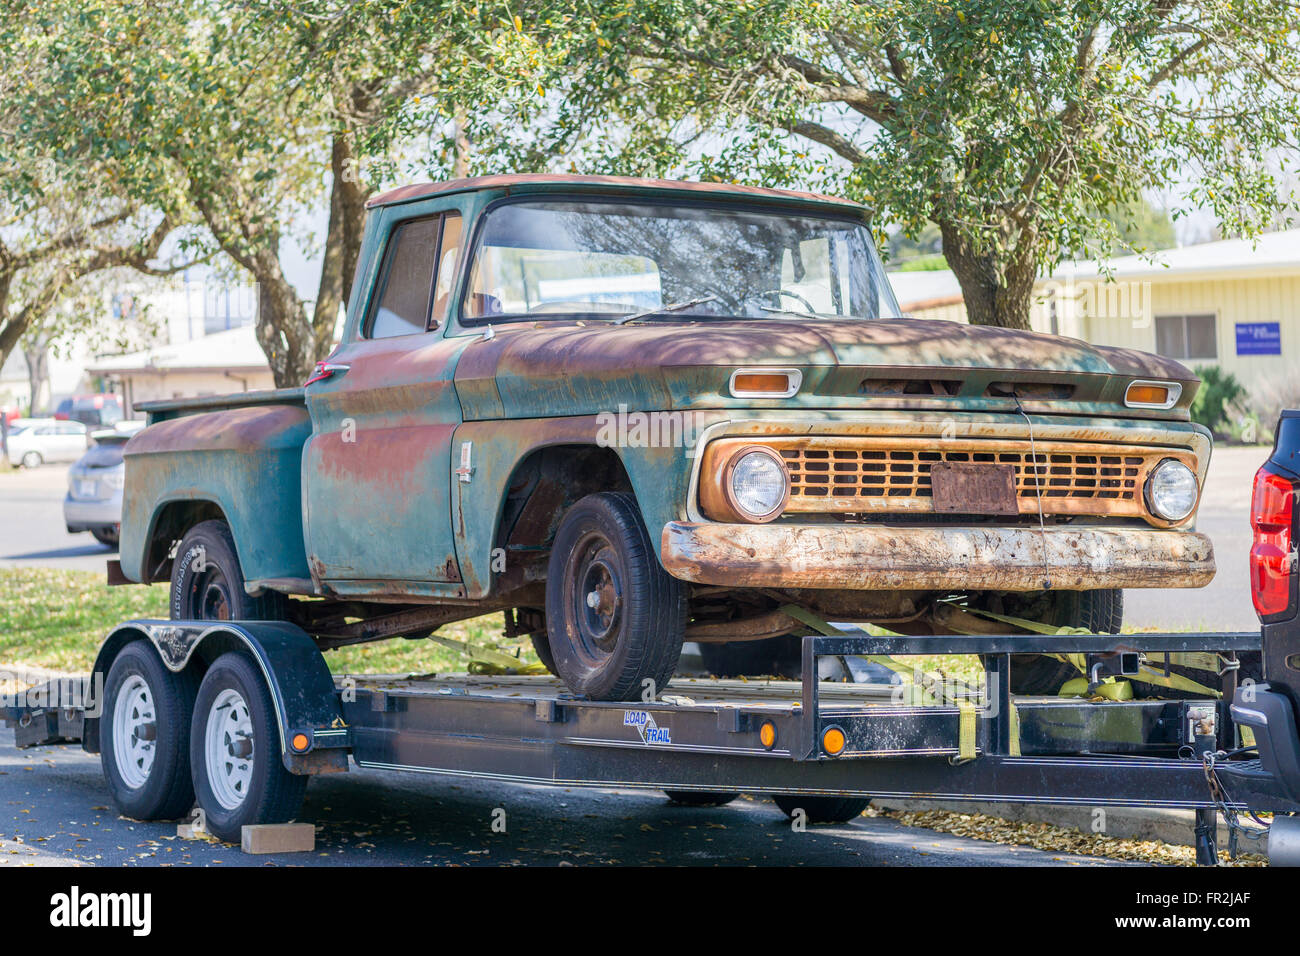 Rusty Truck Trailer Stock Photos & Rusty Truck Trailer Stock Images ...